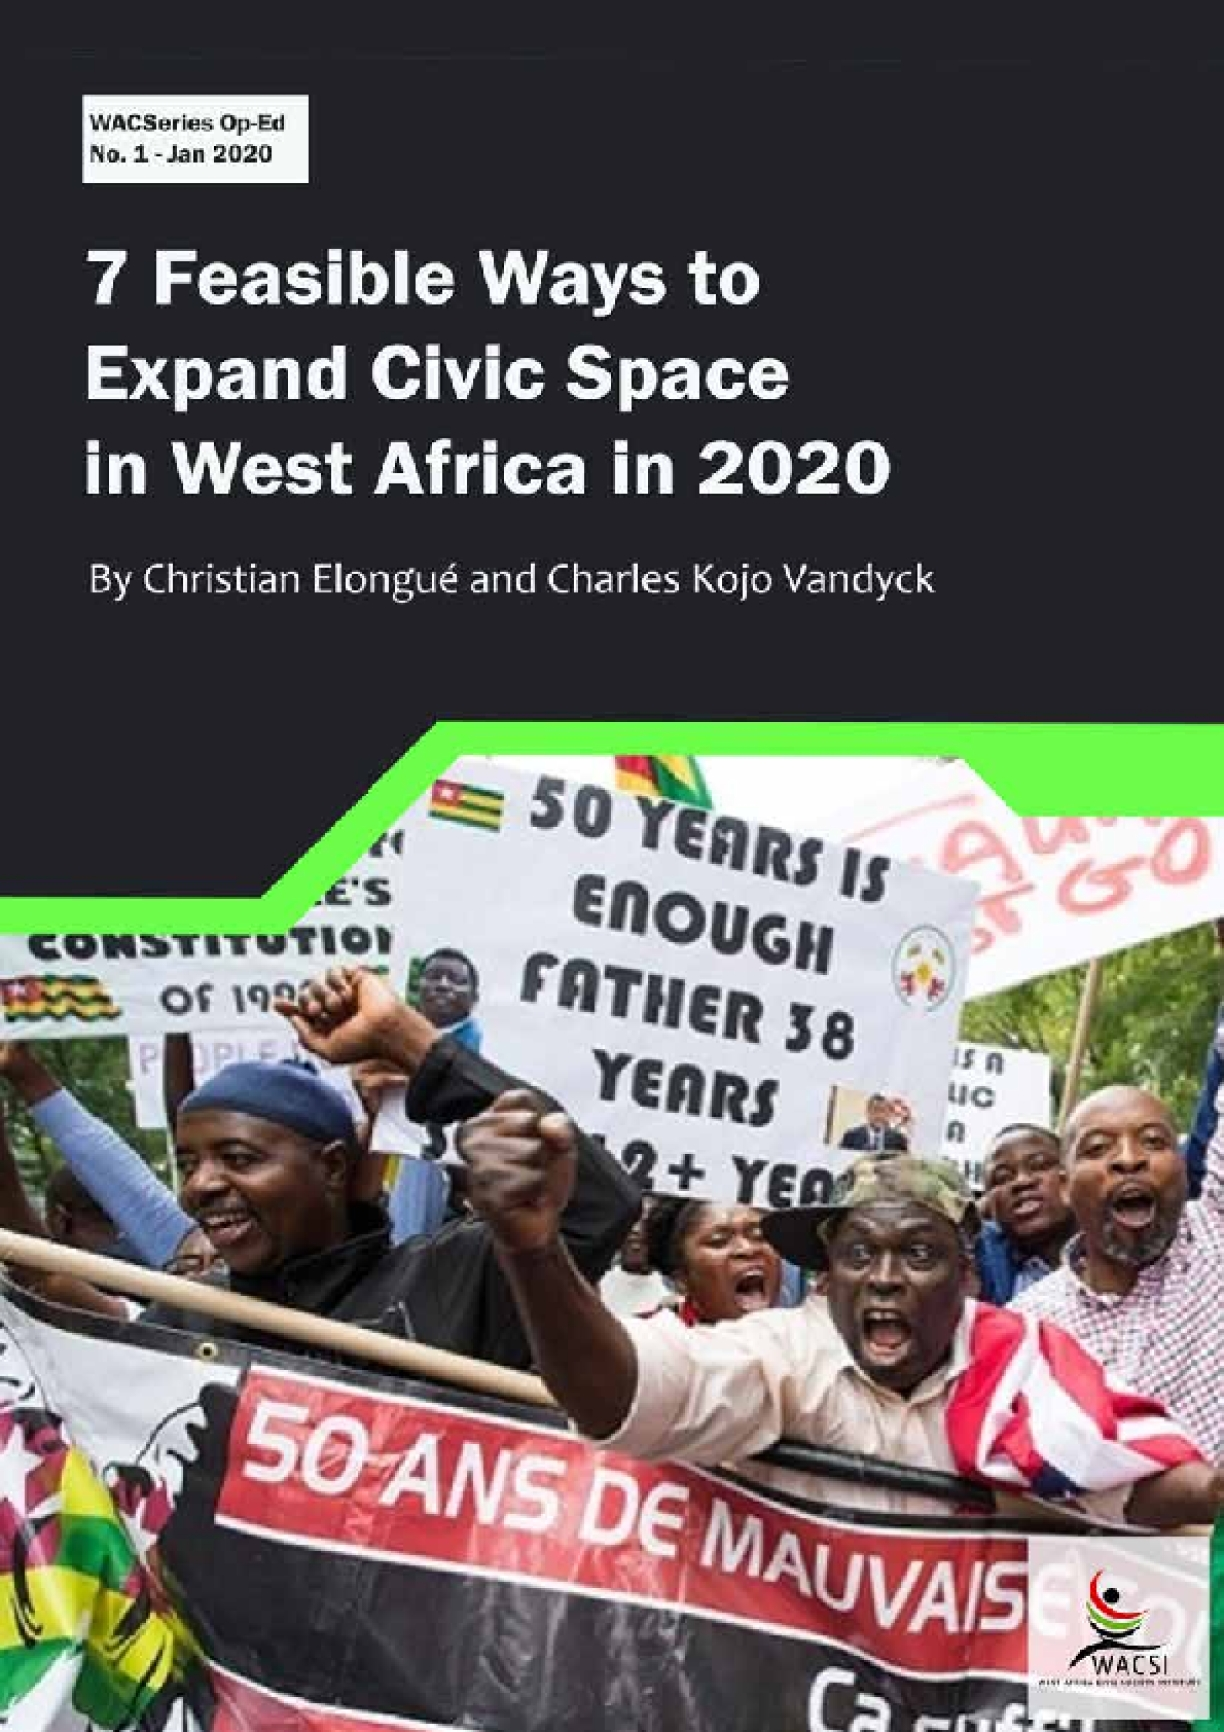 7 Feasible Ways to Expand Civic Space in West Africa in 2020